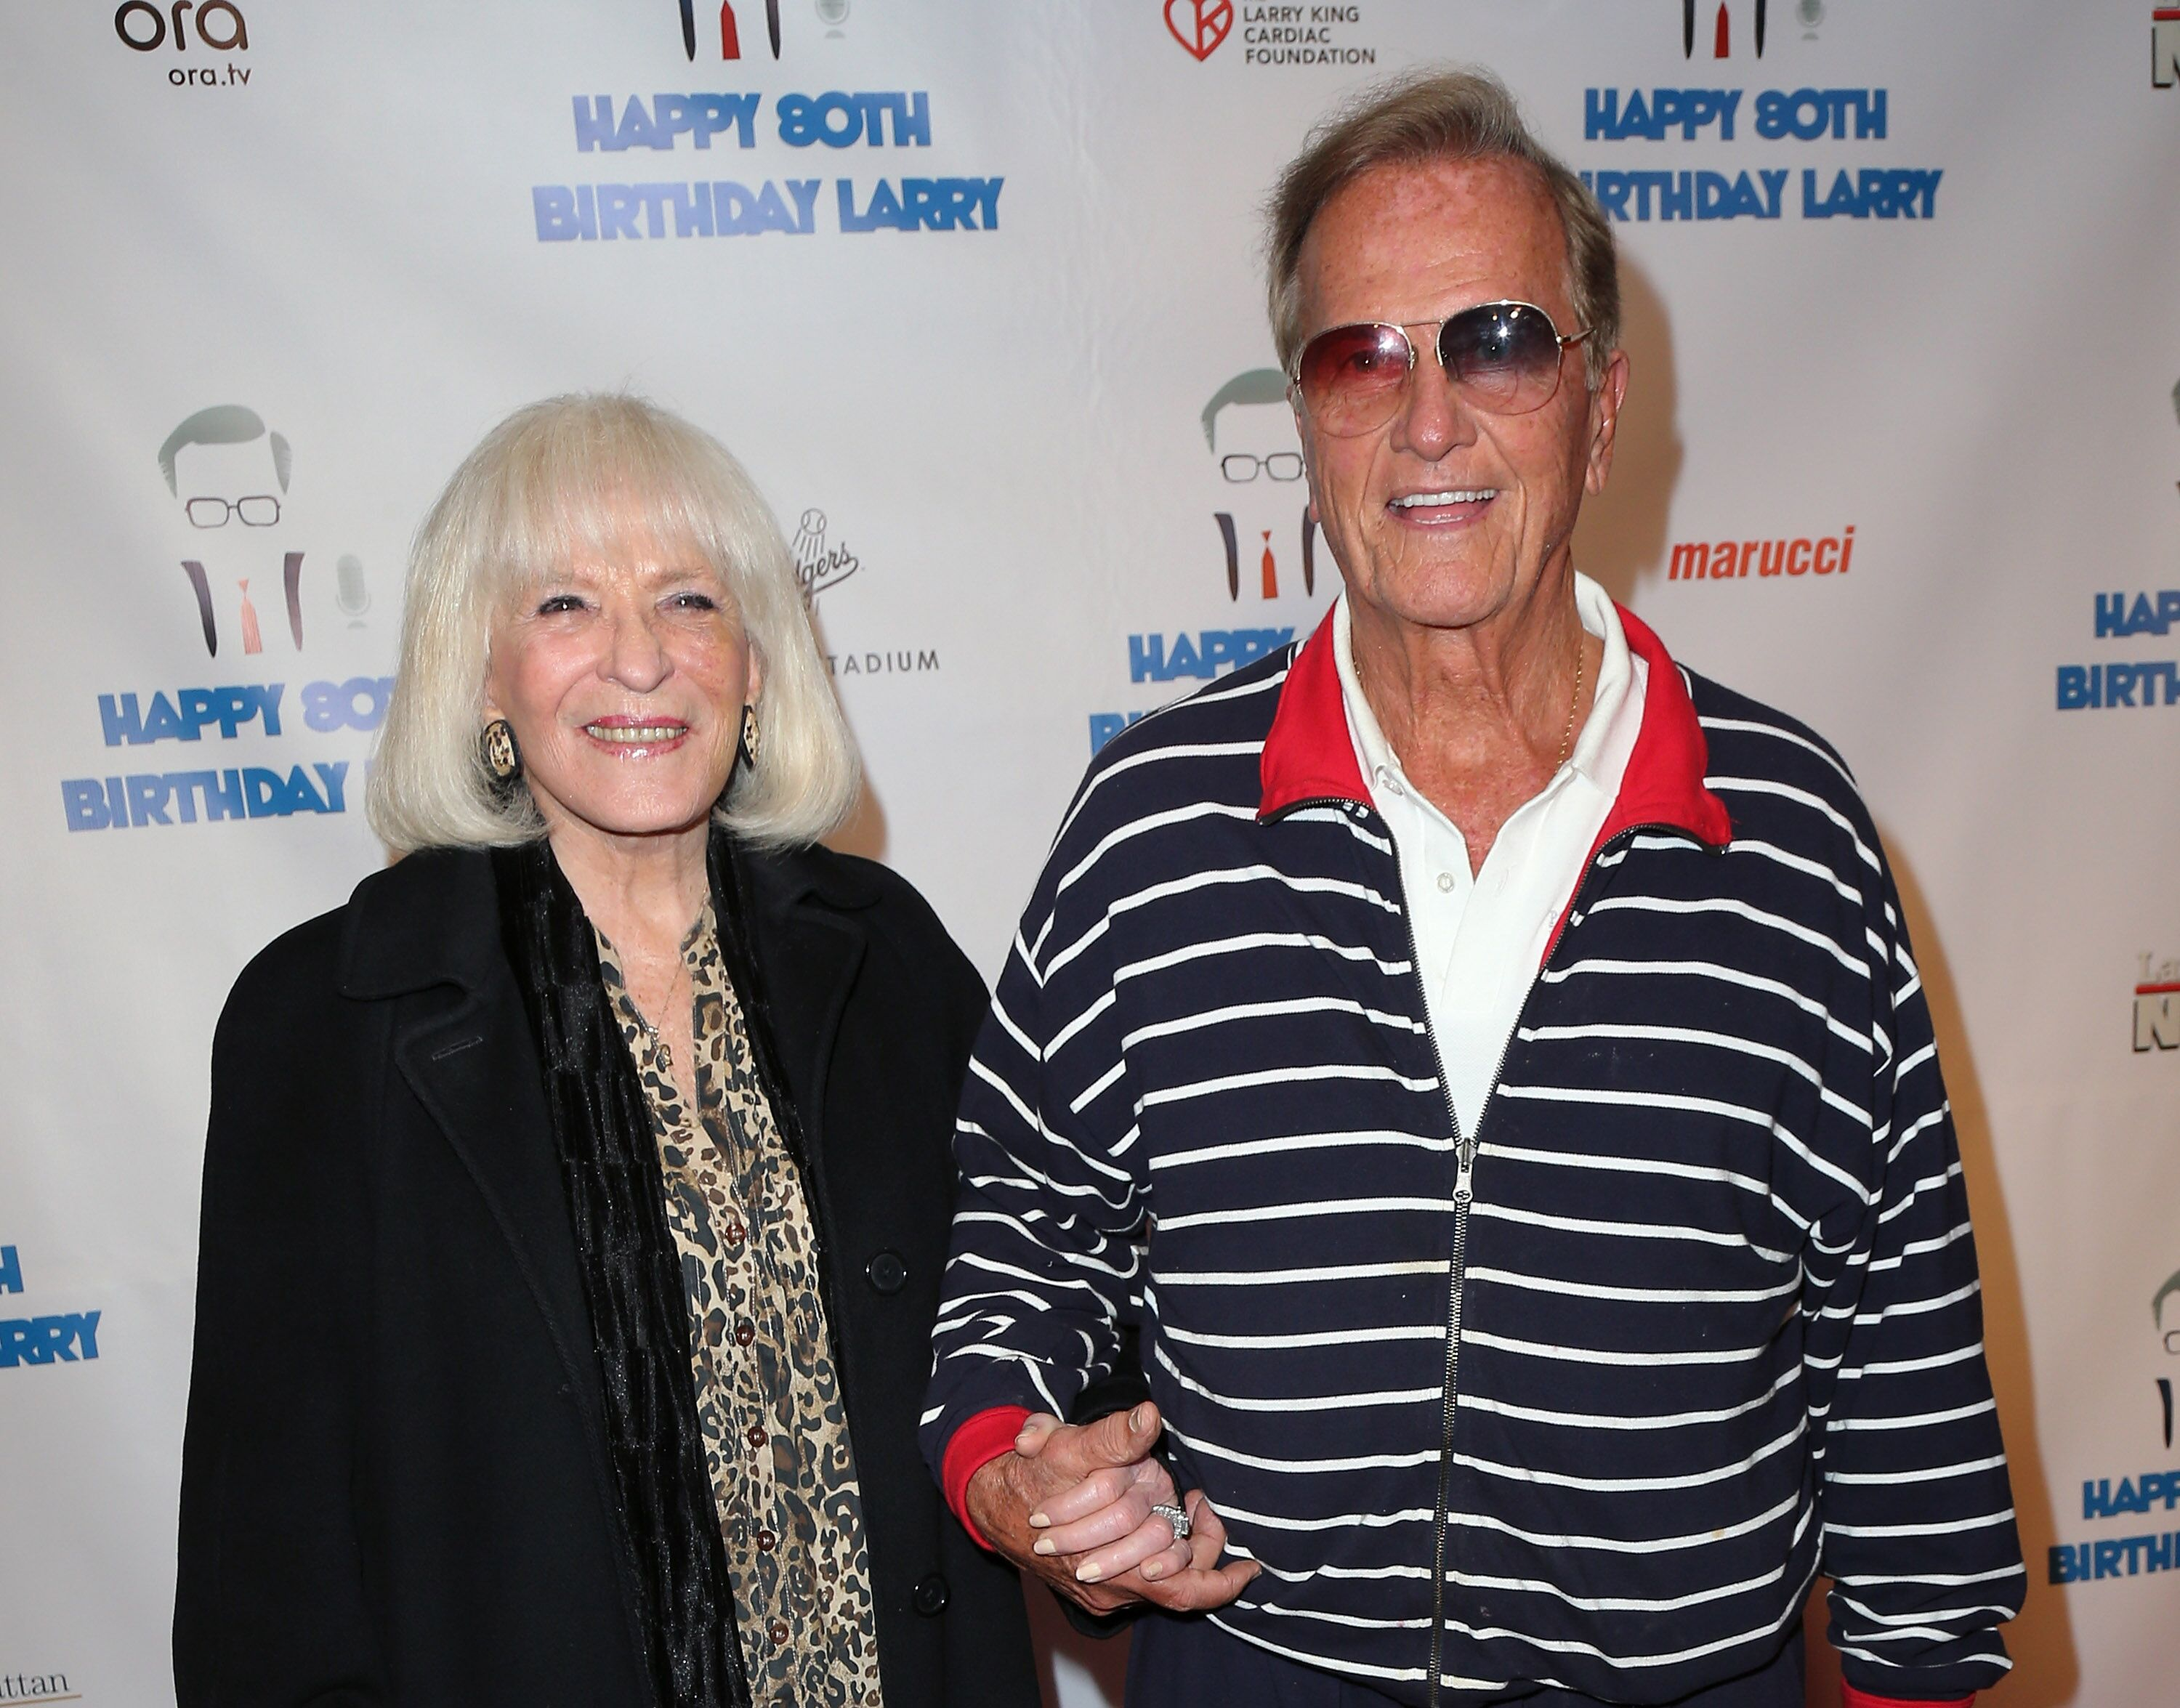 Pat Boone and wife Shirley Boone at Larry King's 80th birthday surprise party in Los Angeles in 2013 | Source: Getty Images